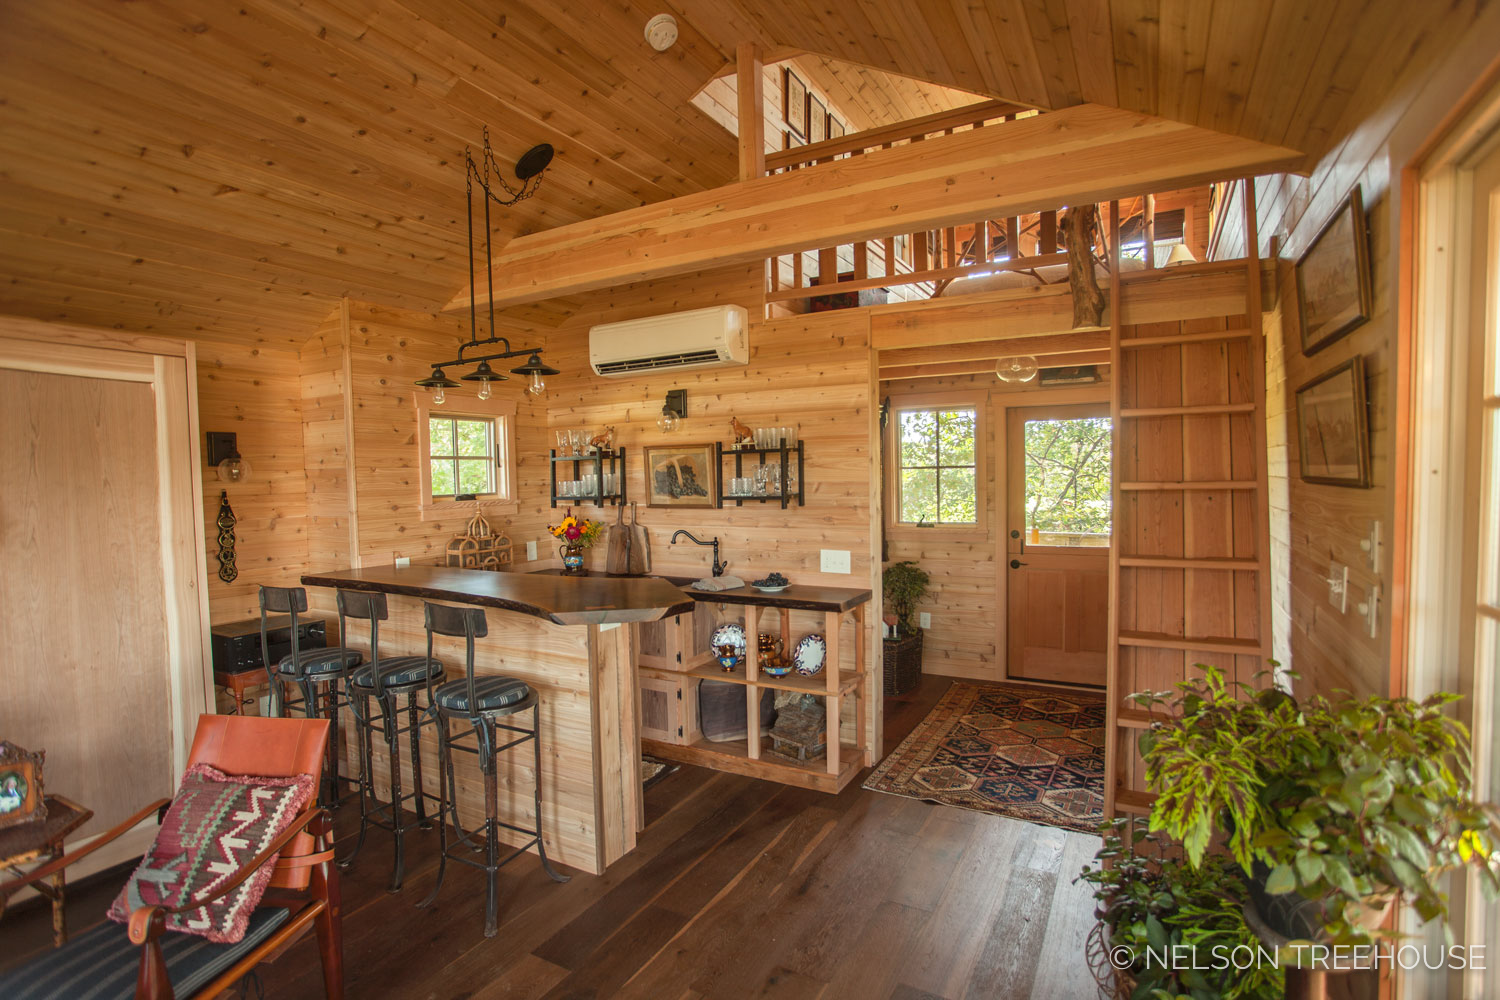 COMPLETED INTERIOR OF THE FOX FARM TREEHOUSE